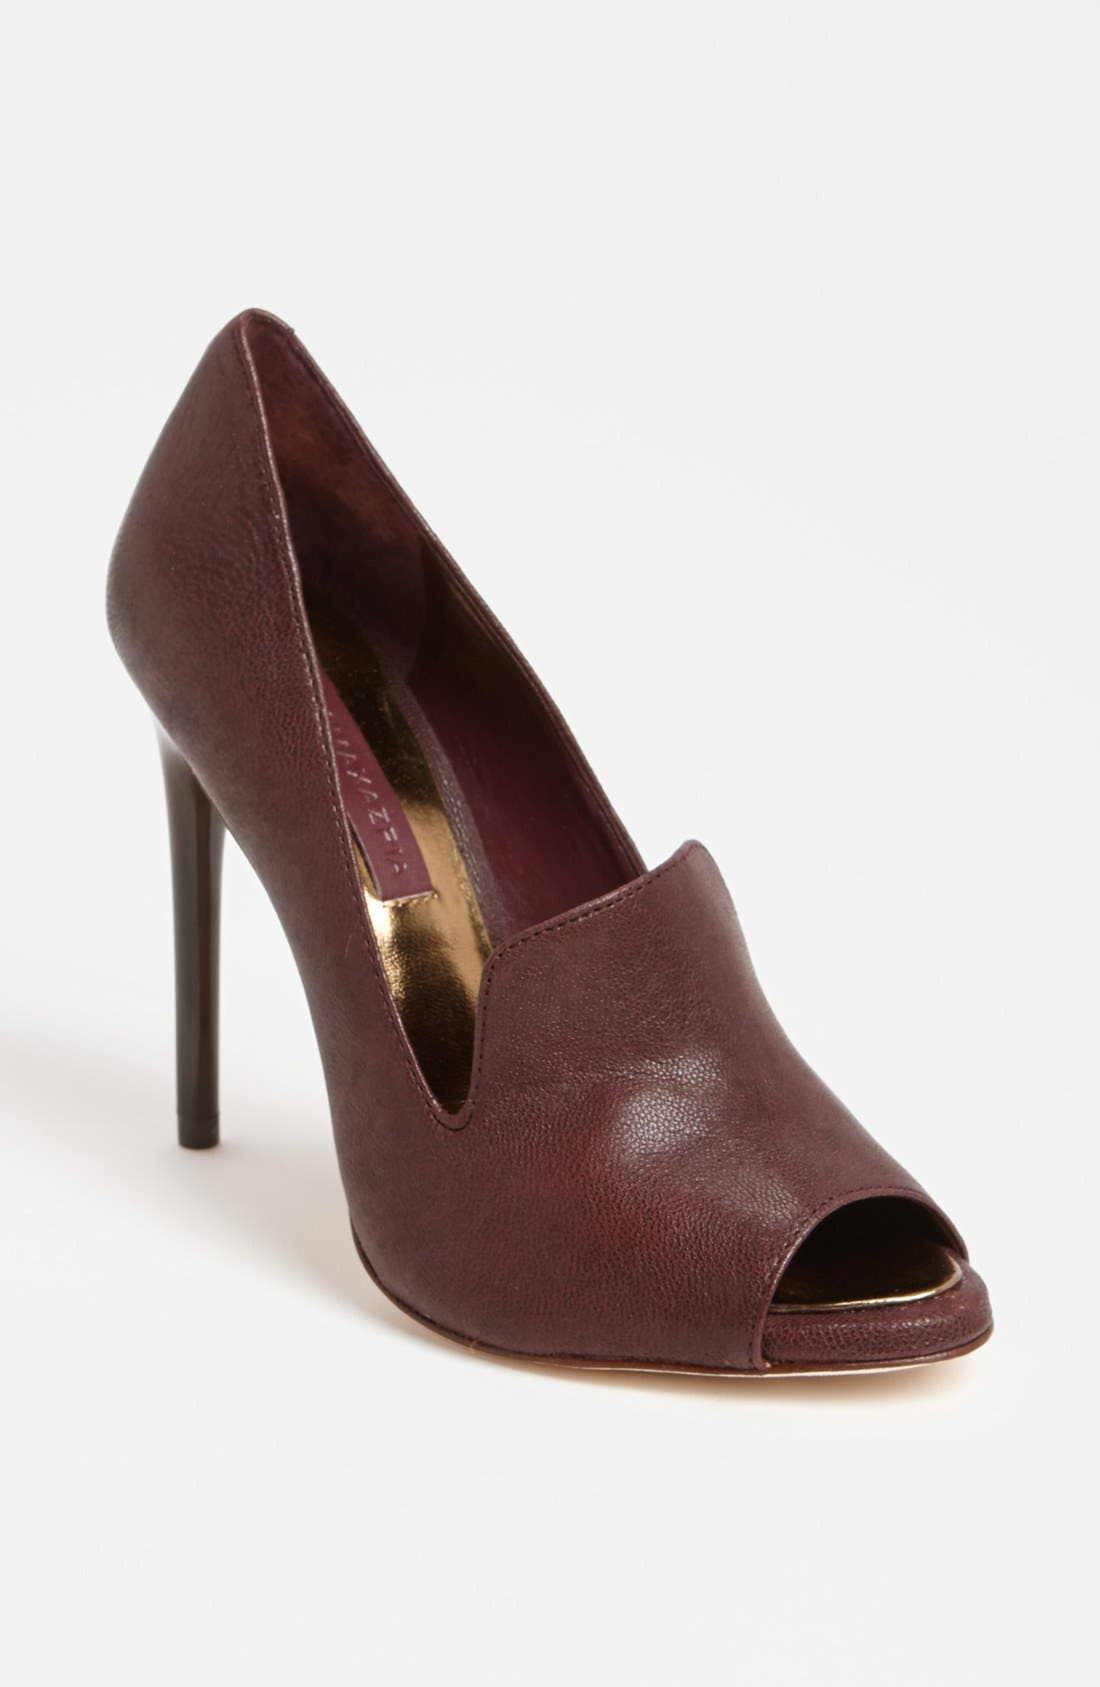 Alternate Image 1 Selected - BCBGMAXAZRIA 'Demie' Pump